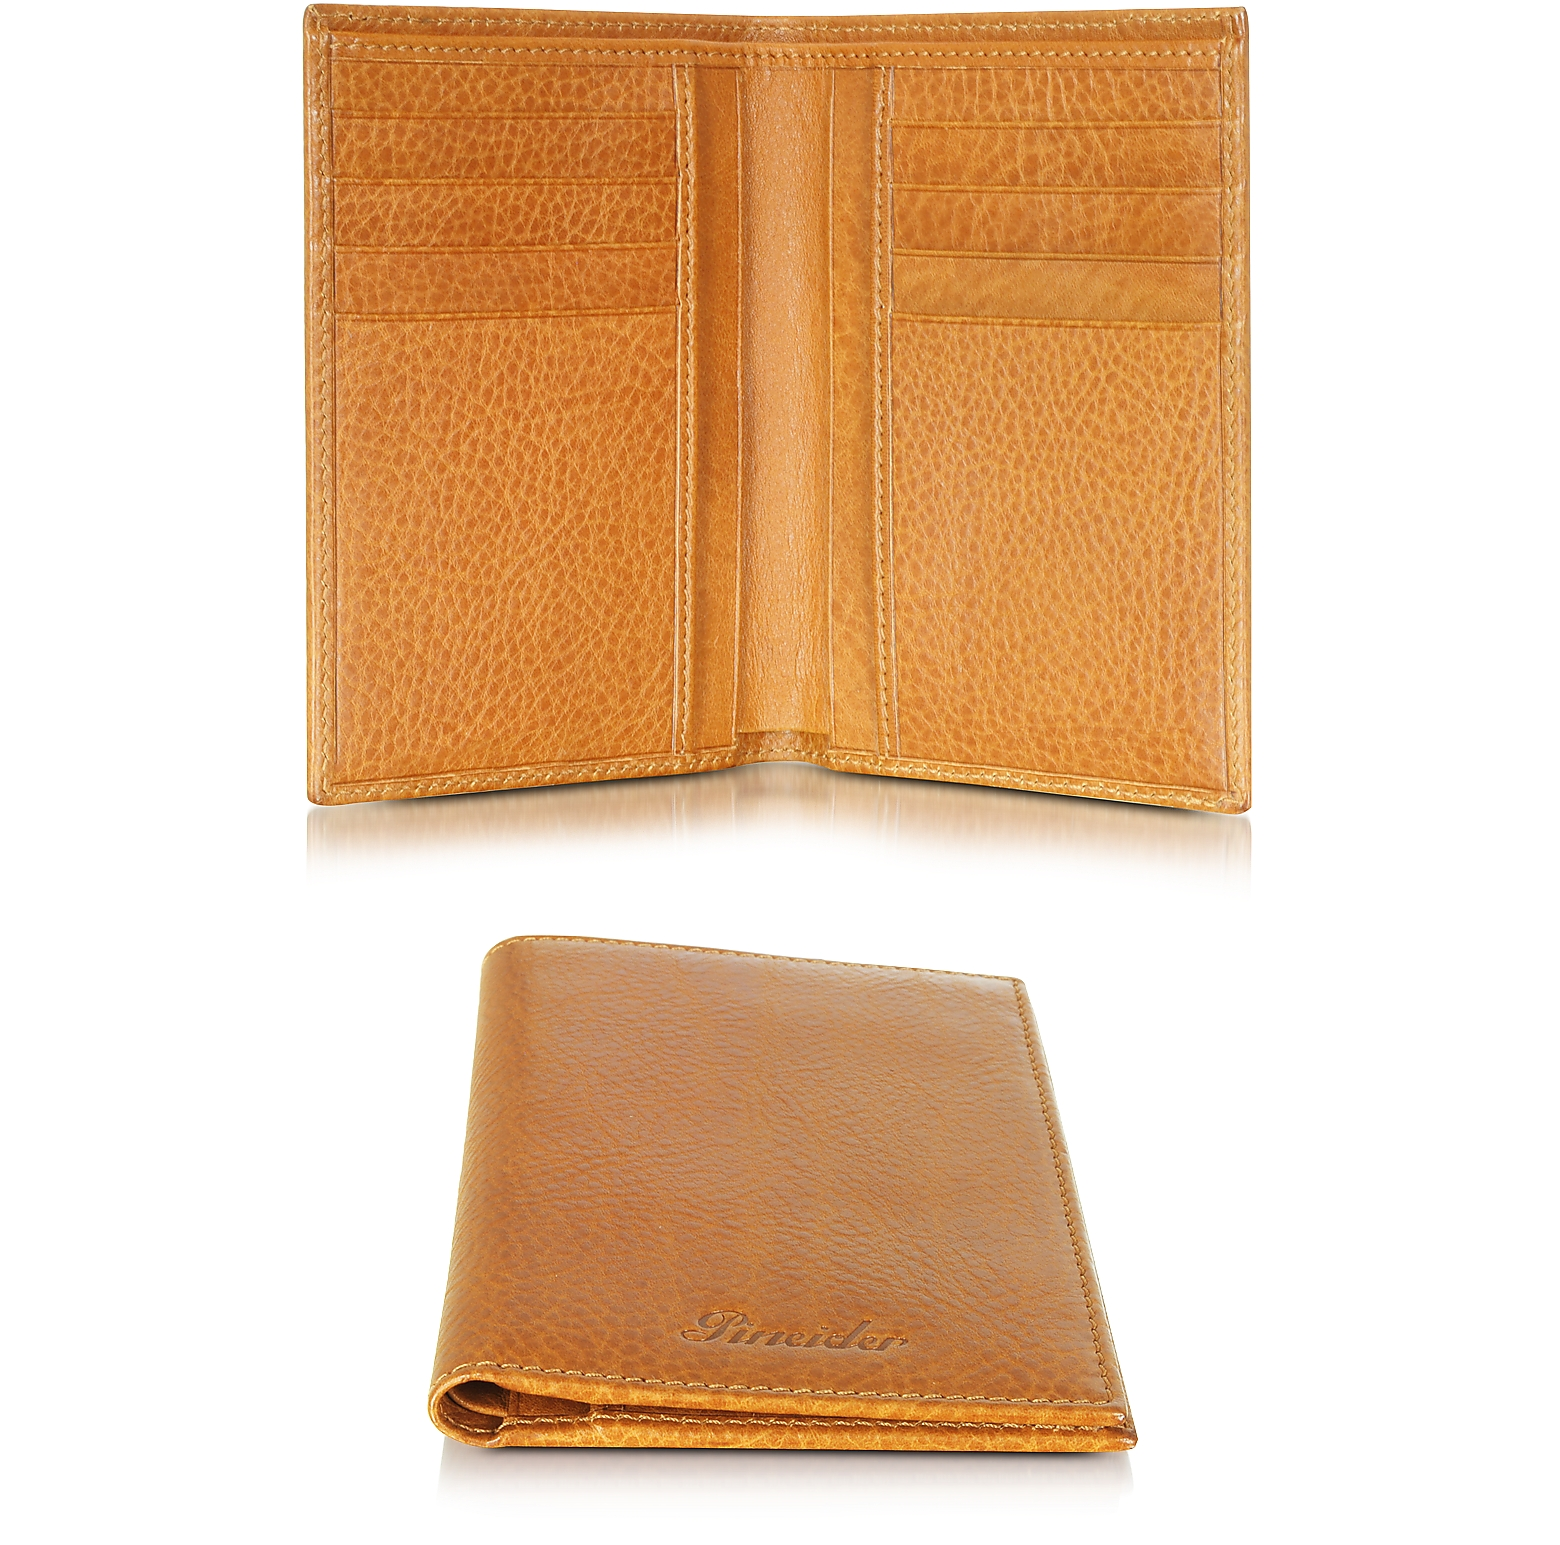 Country Cognac Leather Vertical Wallet